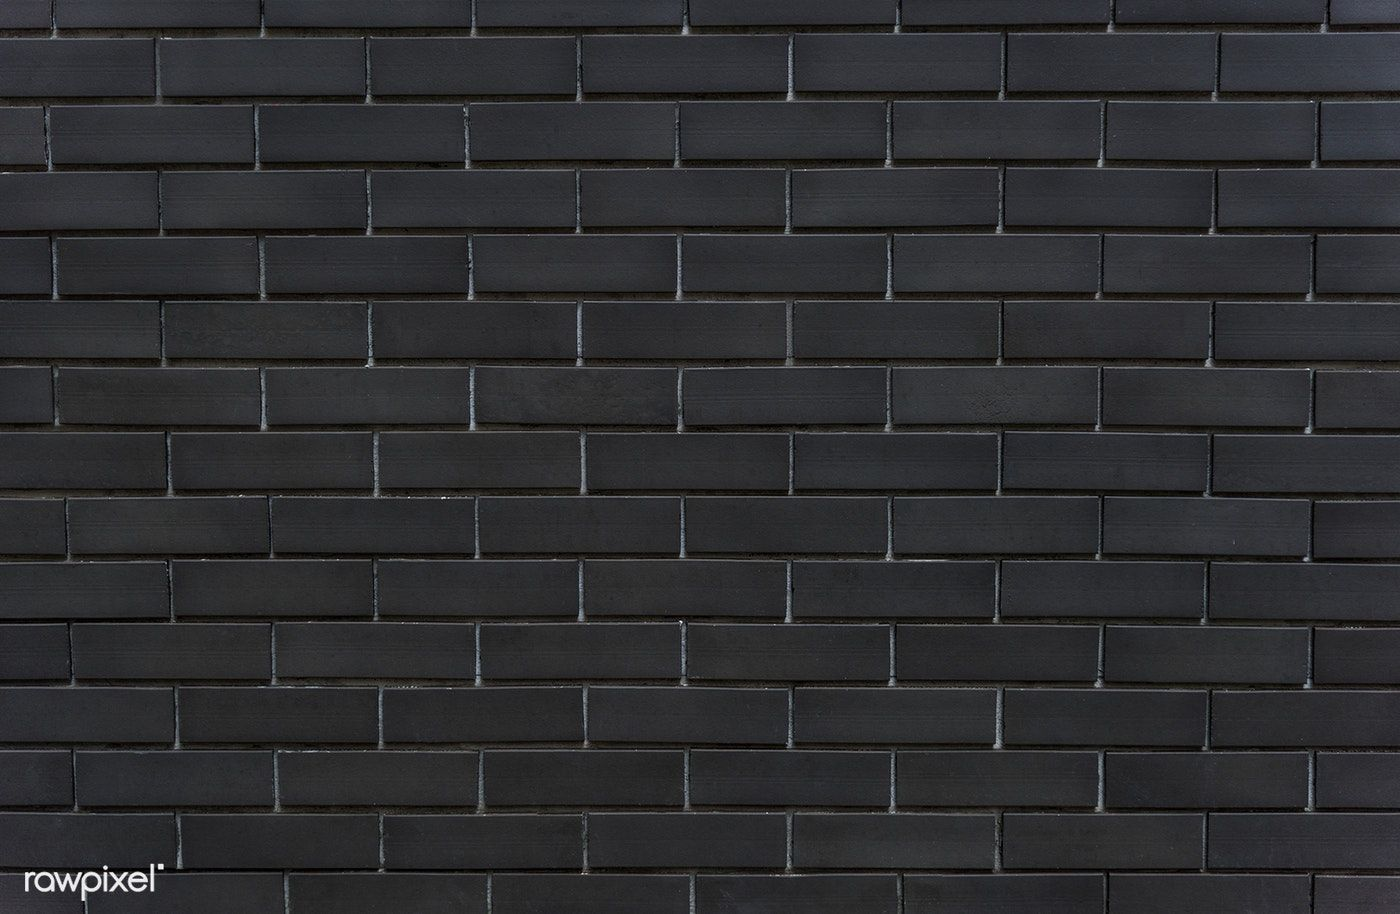 Black Brick Wall Textured Background Free Image By